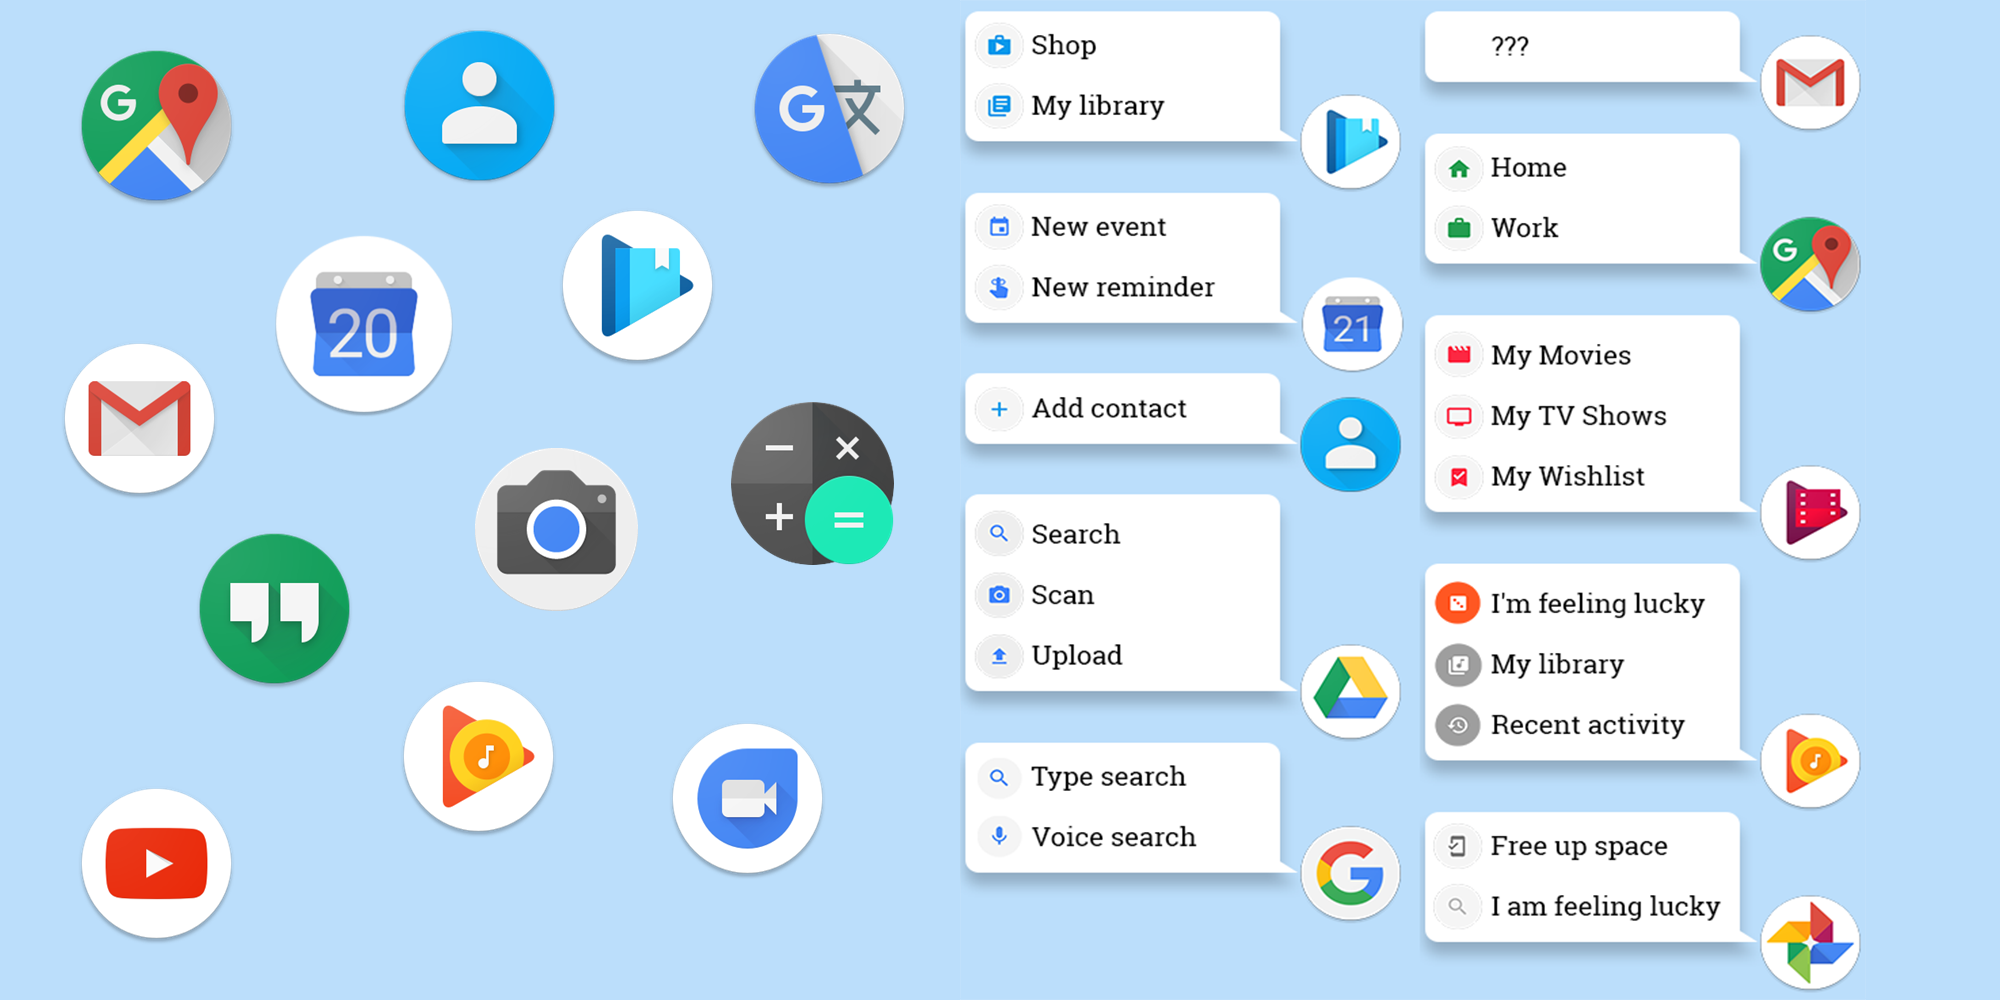 pixellauncher_shortcuts_rounded_1